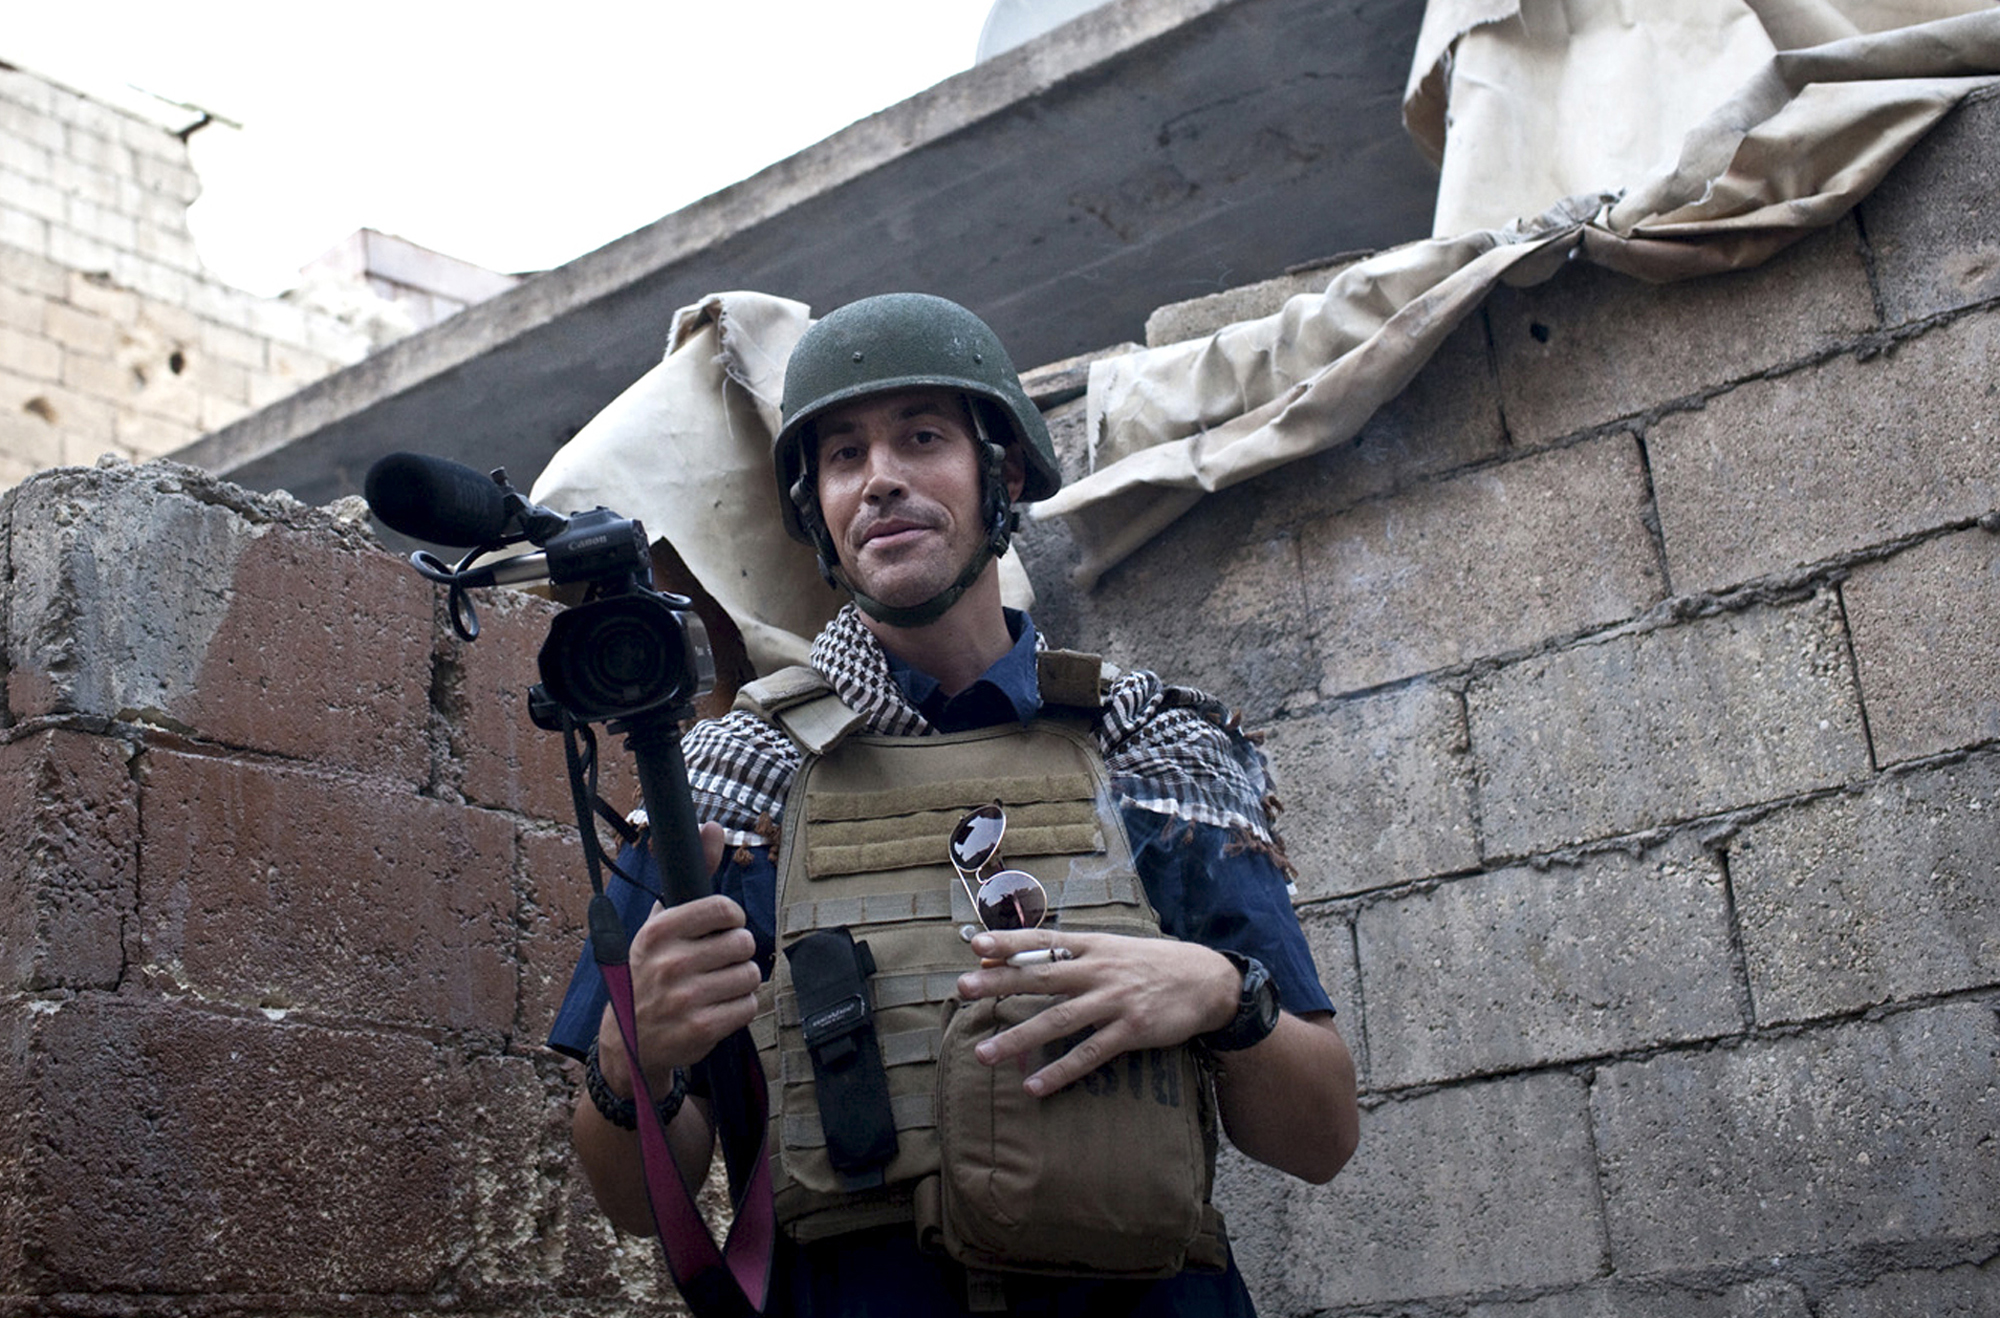 Journalist James Foley covers the civil war in Aleppo, Syria, in November 2012.